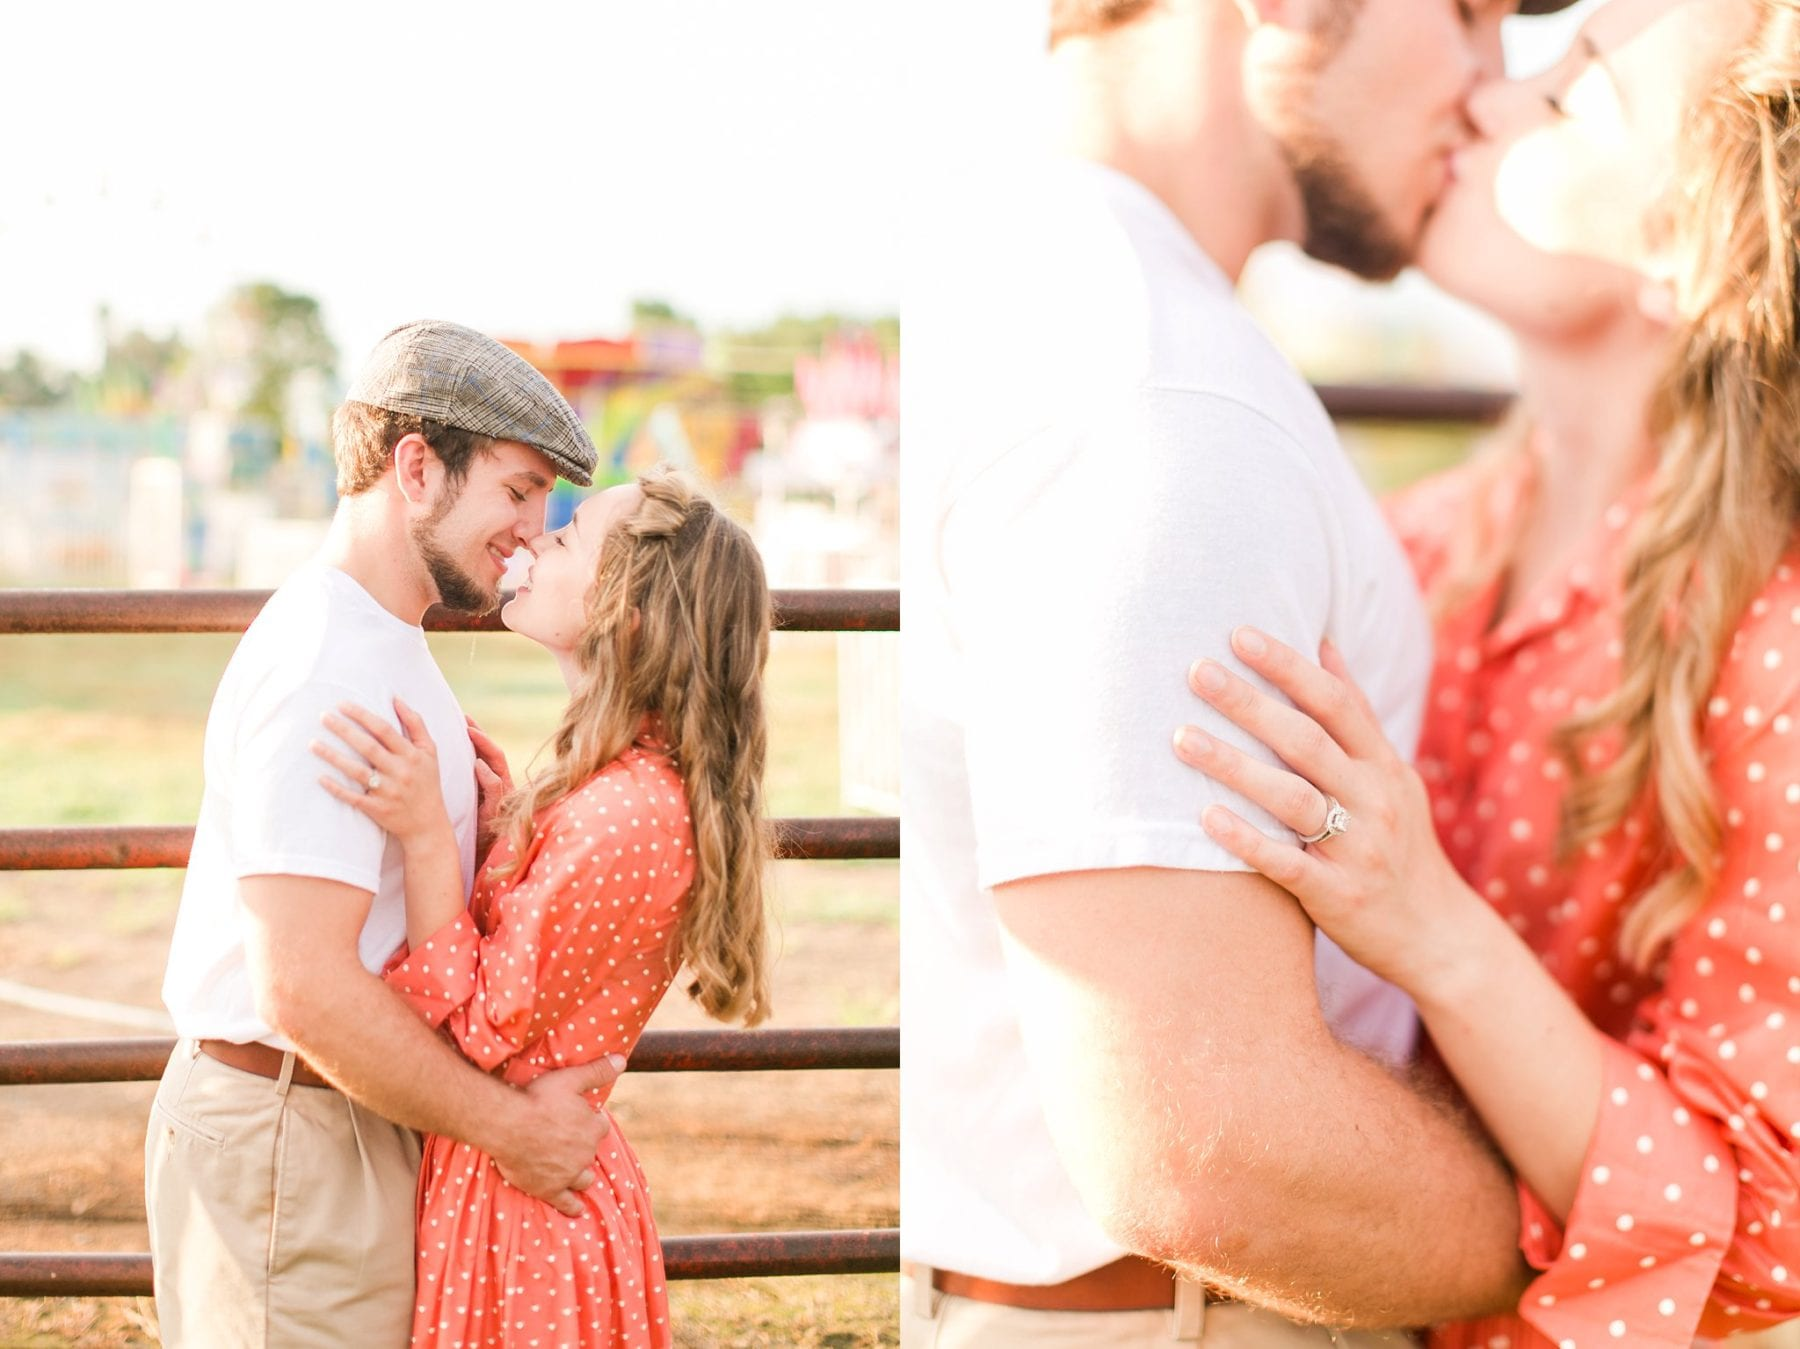 County Fair Engagement Photos Virginia Wedding Photographer Megan Kelsey Photography Samantha & Charles-125.JPG